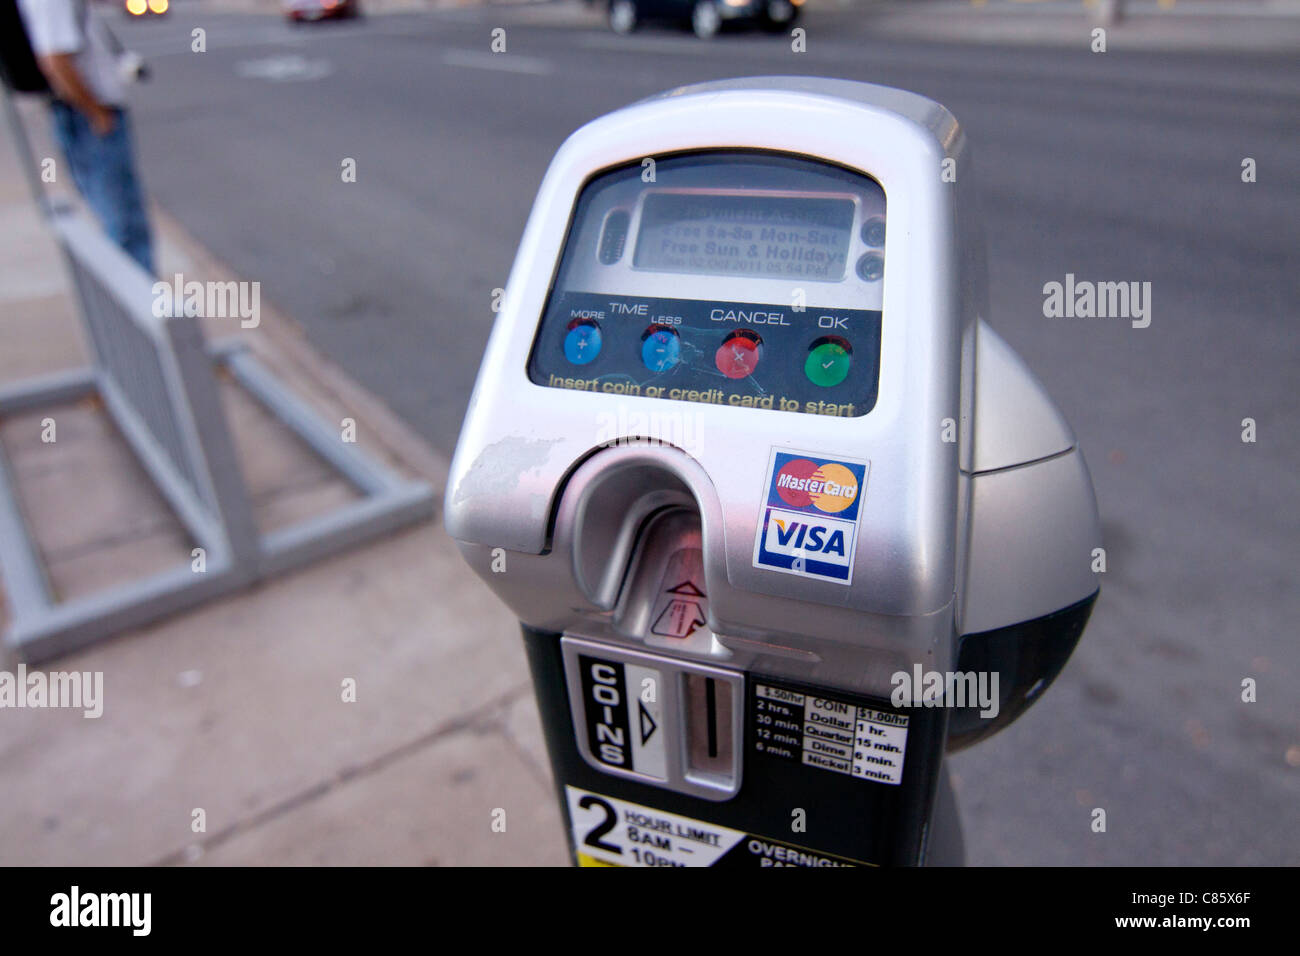 A parking meter in Denver Colorado that accepts credit cards in addition to coins. - Stock Image